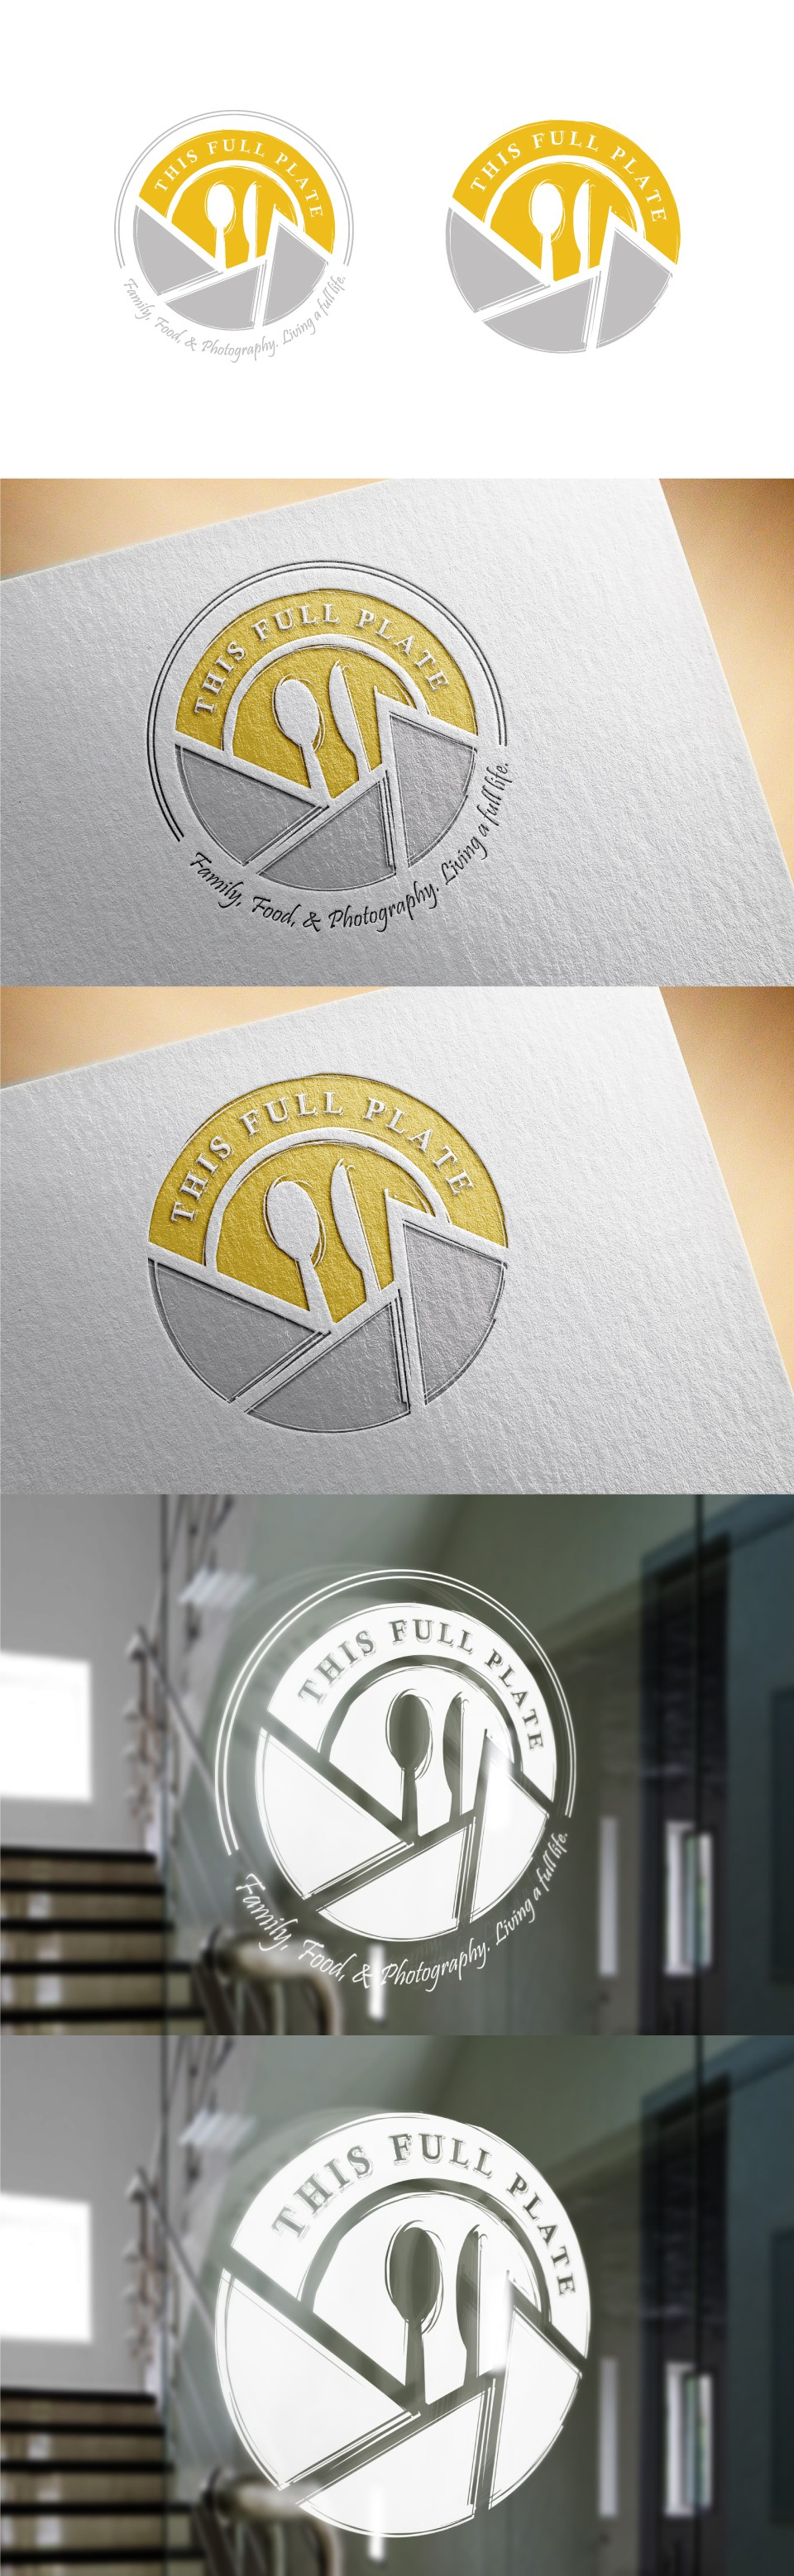 Create a simple, elegant and sophisticated logo for a blog about cooking, photography and travel